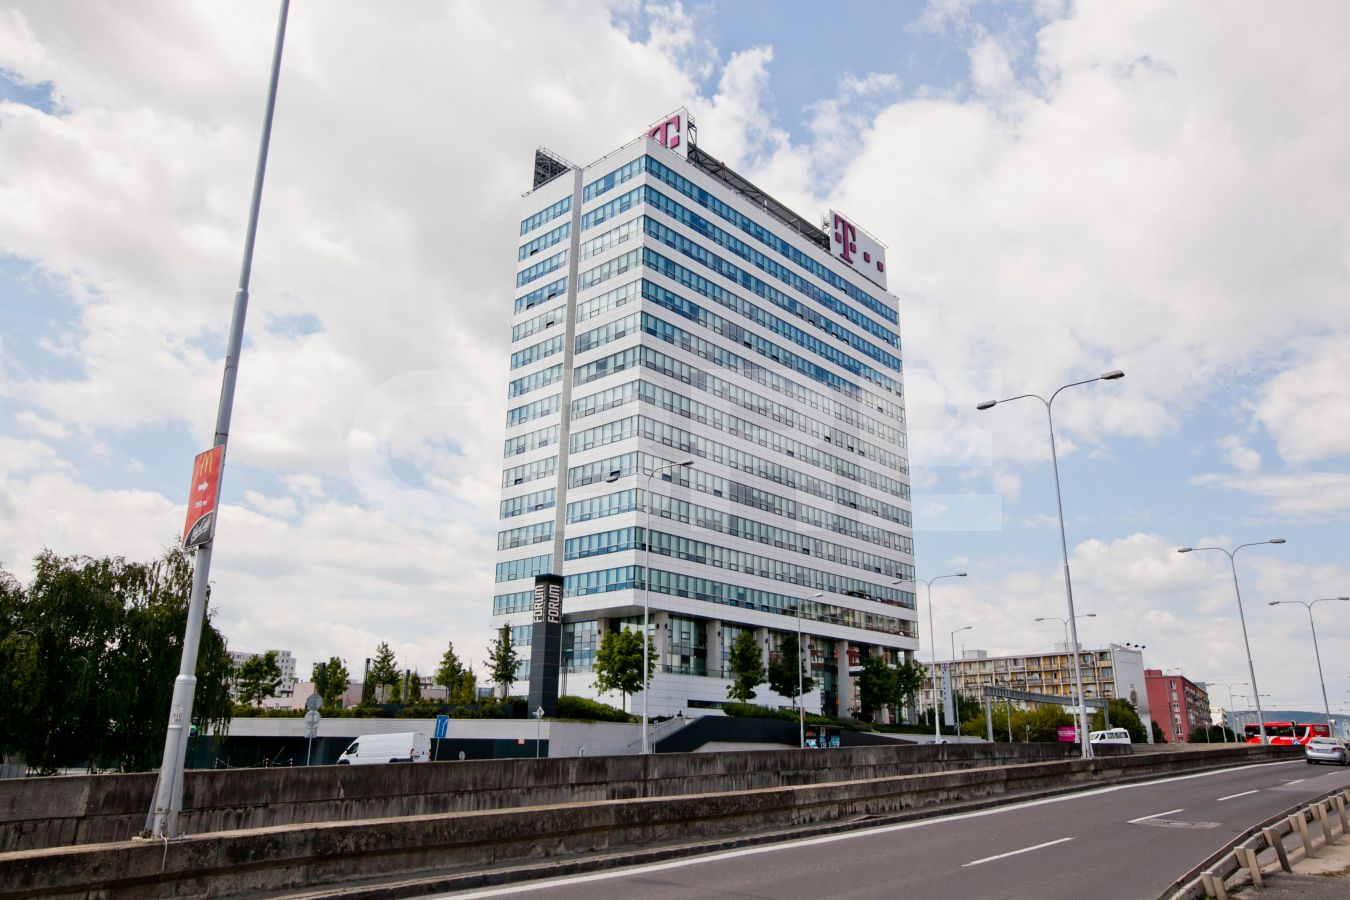 Forum BC, Bratislava - Ružinov | Offices for rent by CBRE | 2